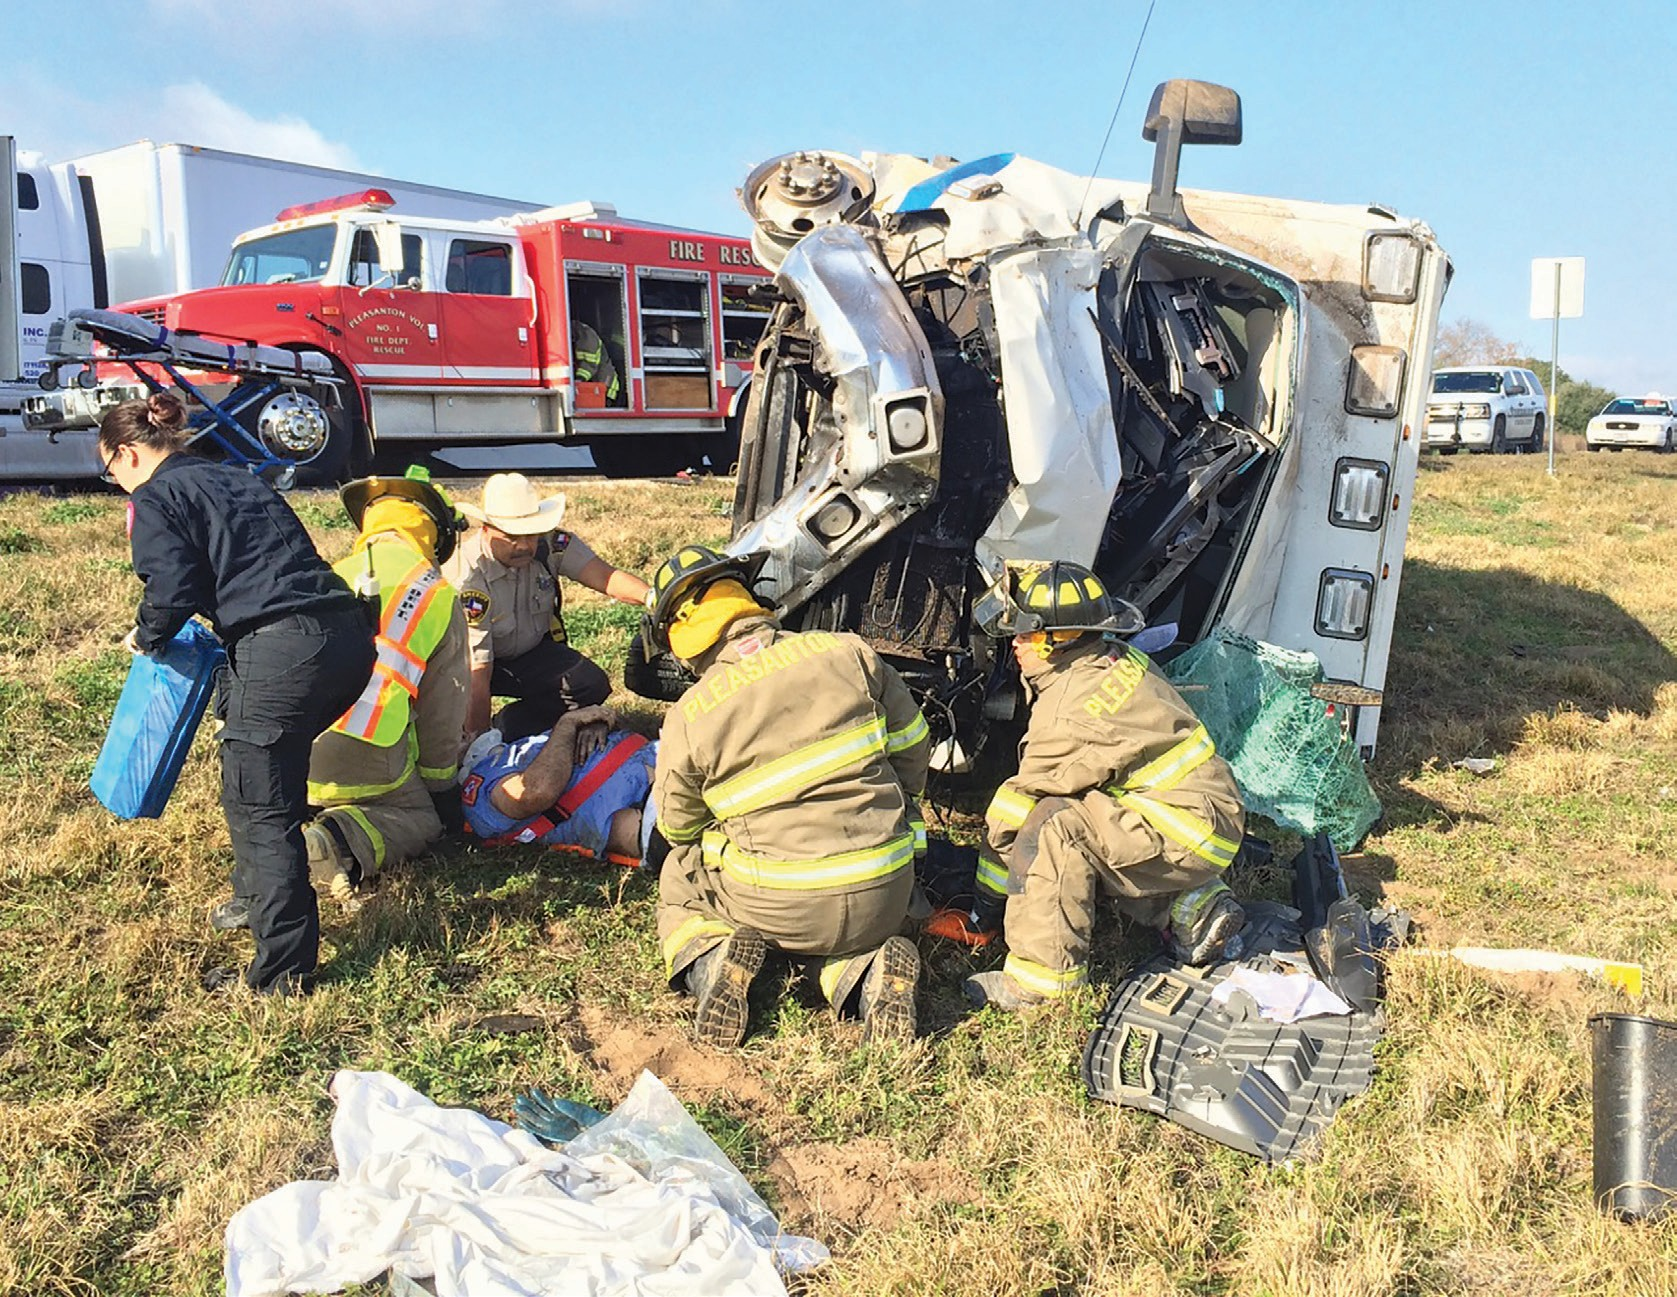 Law enforcement agencies and emergency personnel responded to IH-37 near mile marker 92 on Thursday, Jan. 21, for a major accident involving an out-of-town EMS unit. Three people were injured and one was flown by AirLife. The Pleasanton Volunteer Fire Department, Atascosa County Sheriff's Department, Texas DPS and EMS were at the scene. The accident occurred at approximately 10 a.m.